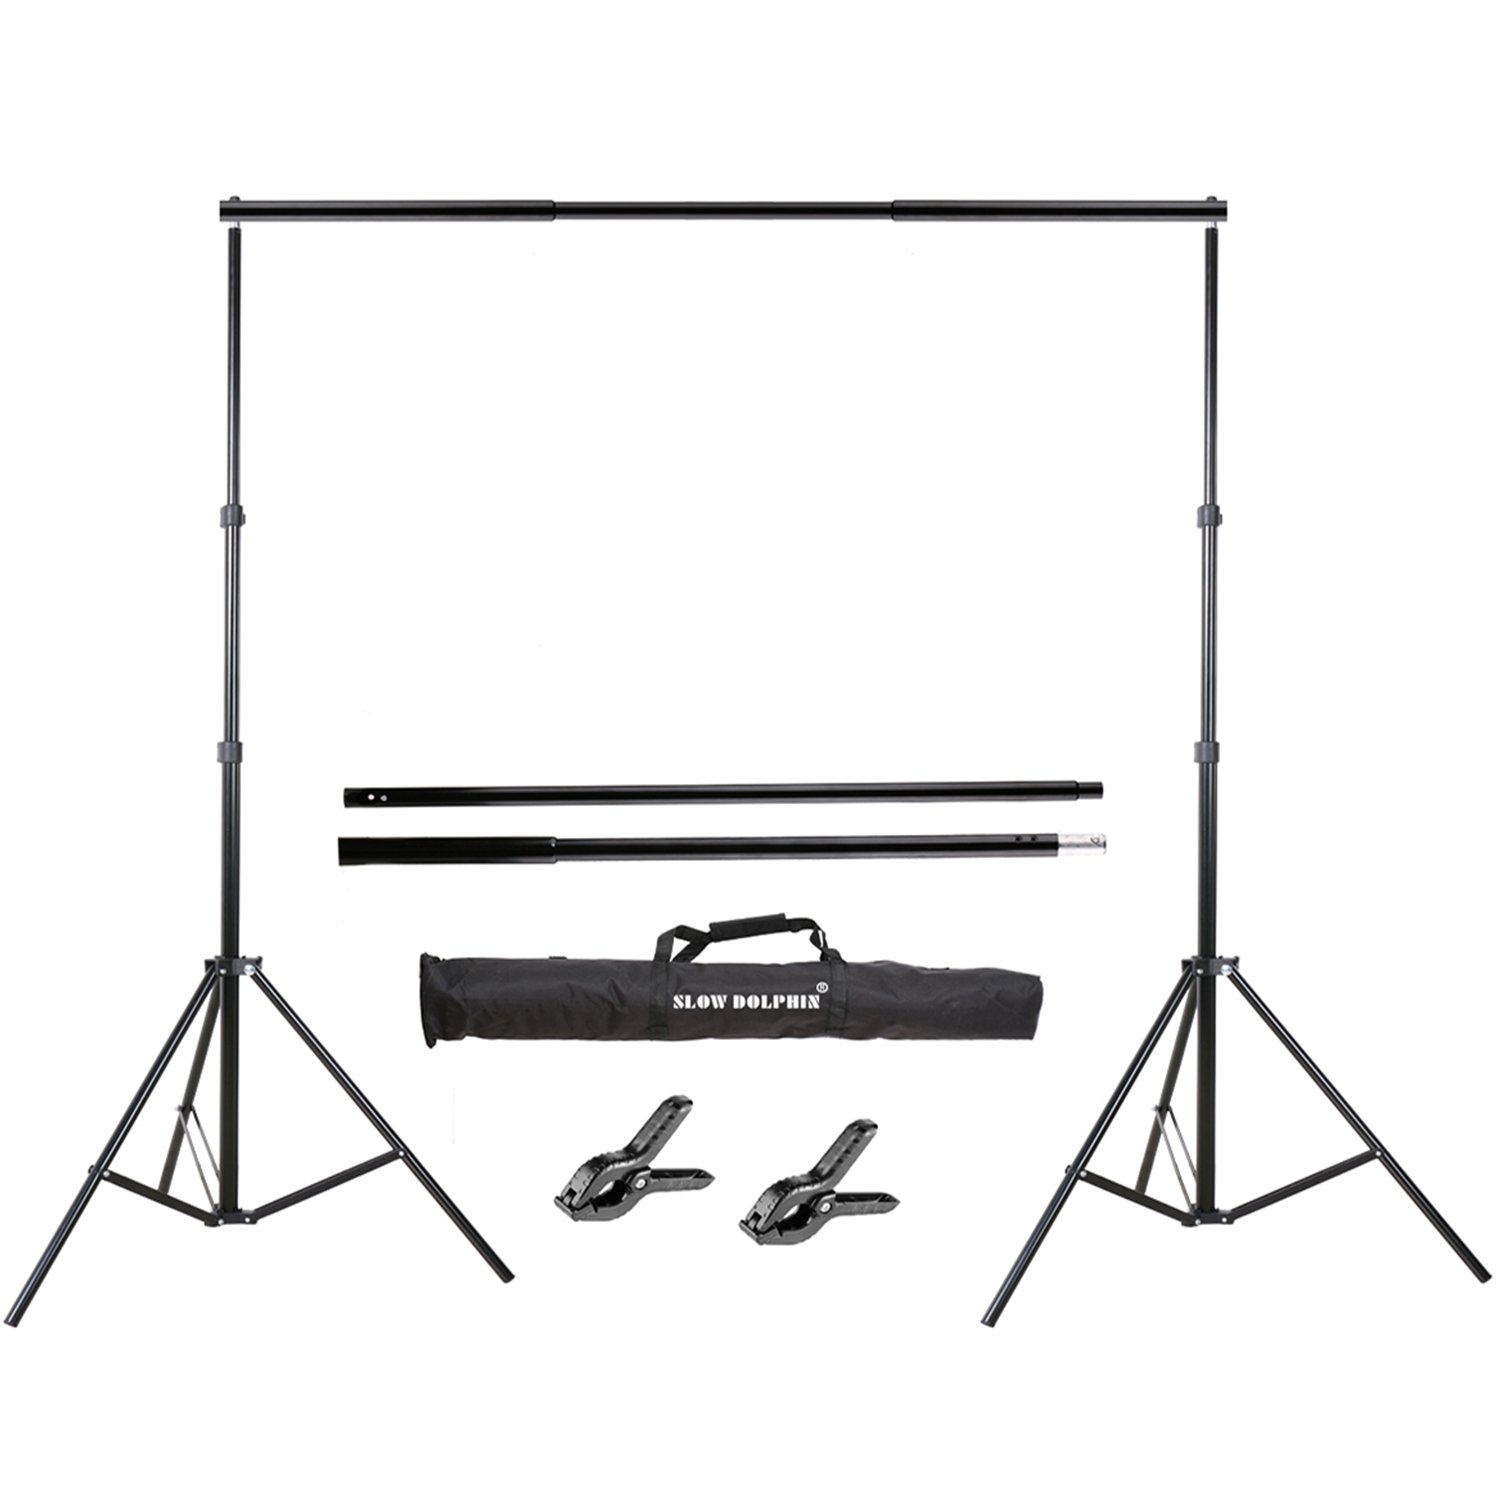 Slow Dolphin Photo Video Studio 10Ft Adjustable Backdrop Support System Light Stands with Background Holder Kit by SLOW DOLPHIN